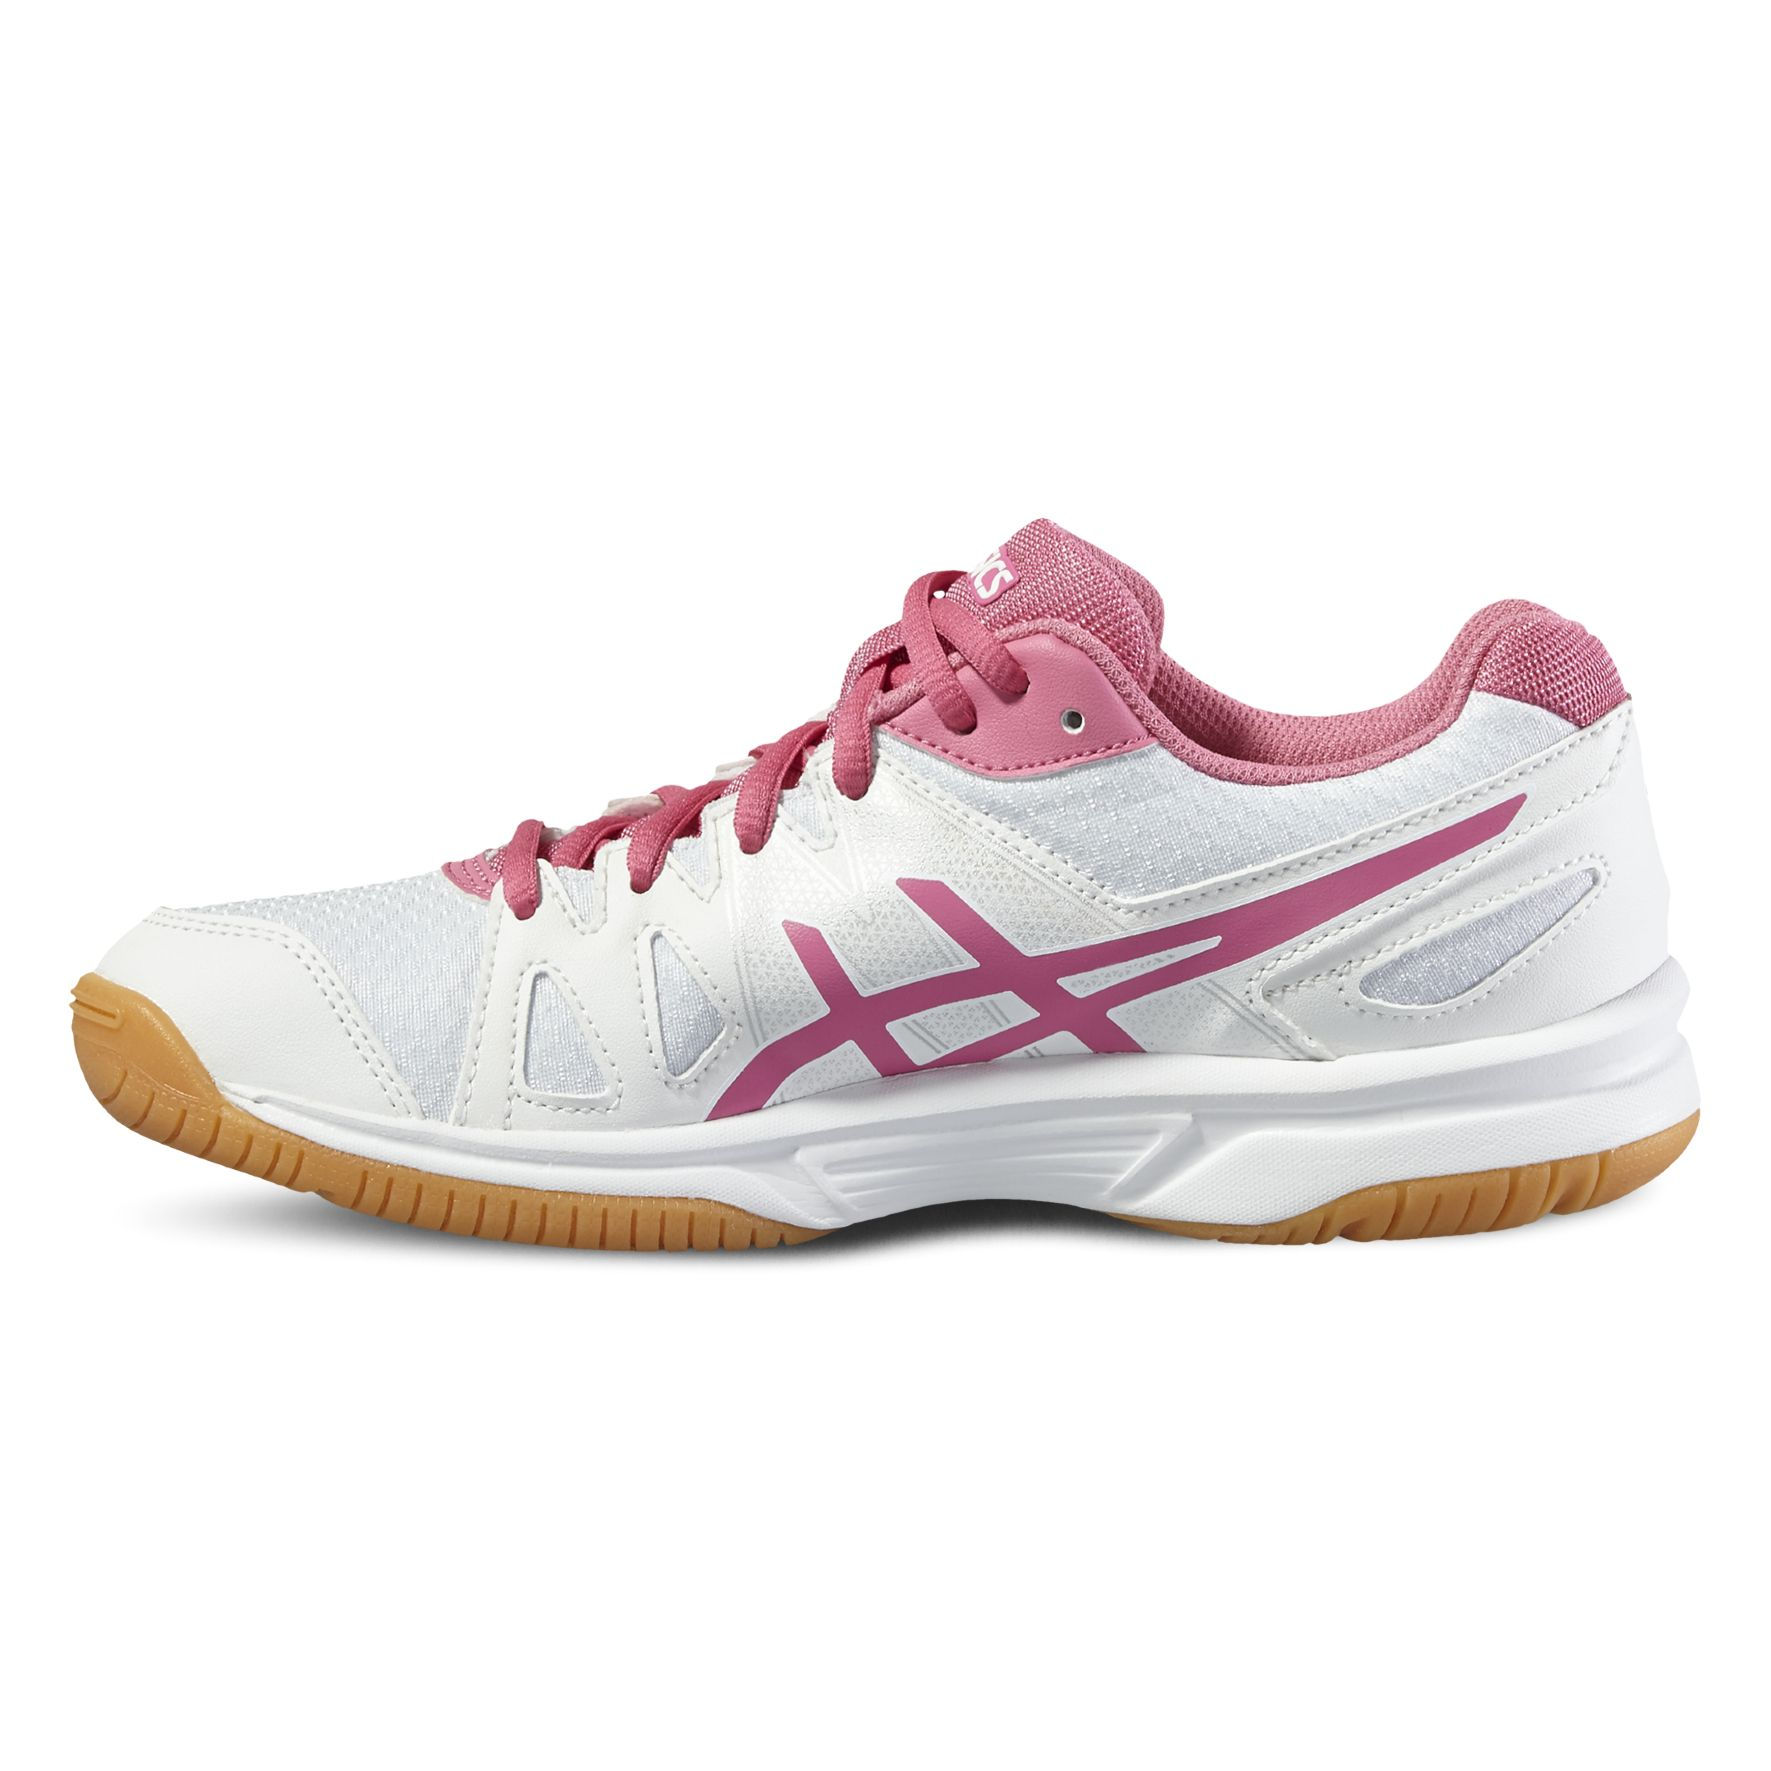 Indoor Tennis Shoes For Durability